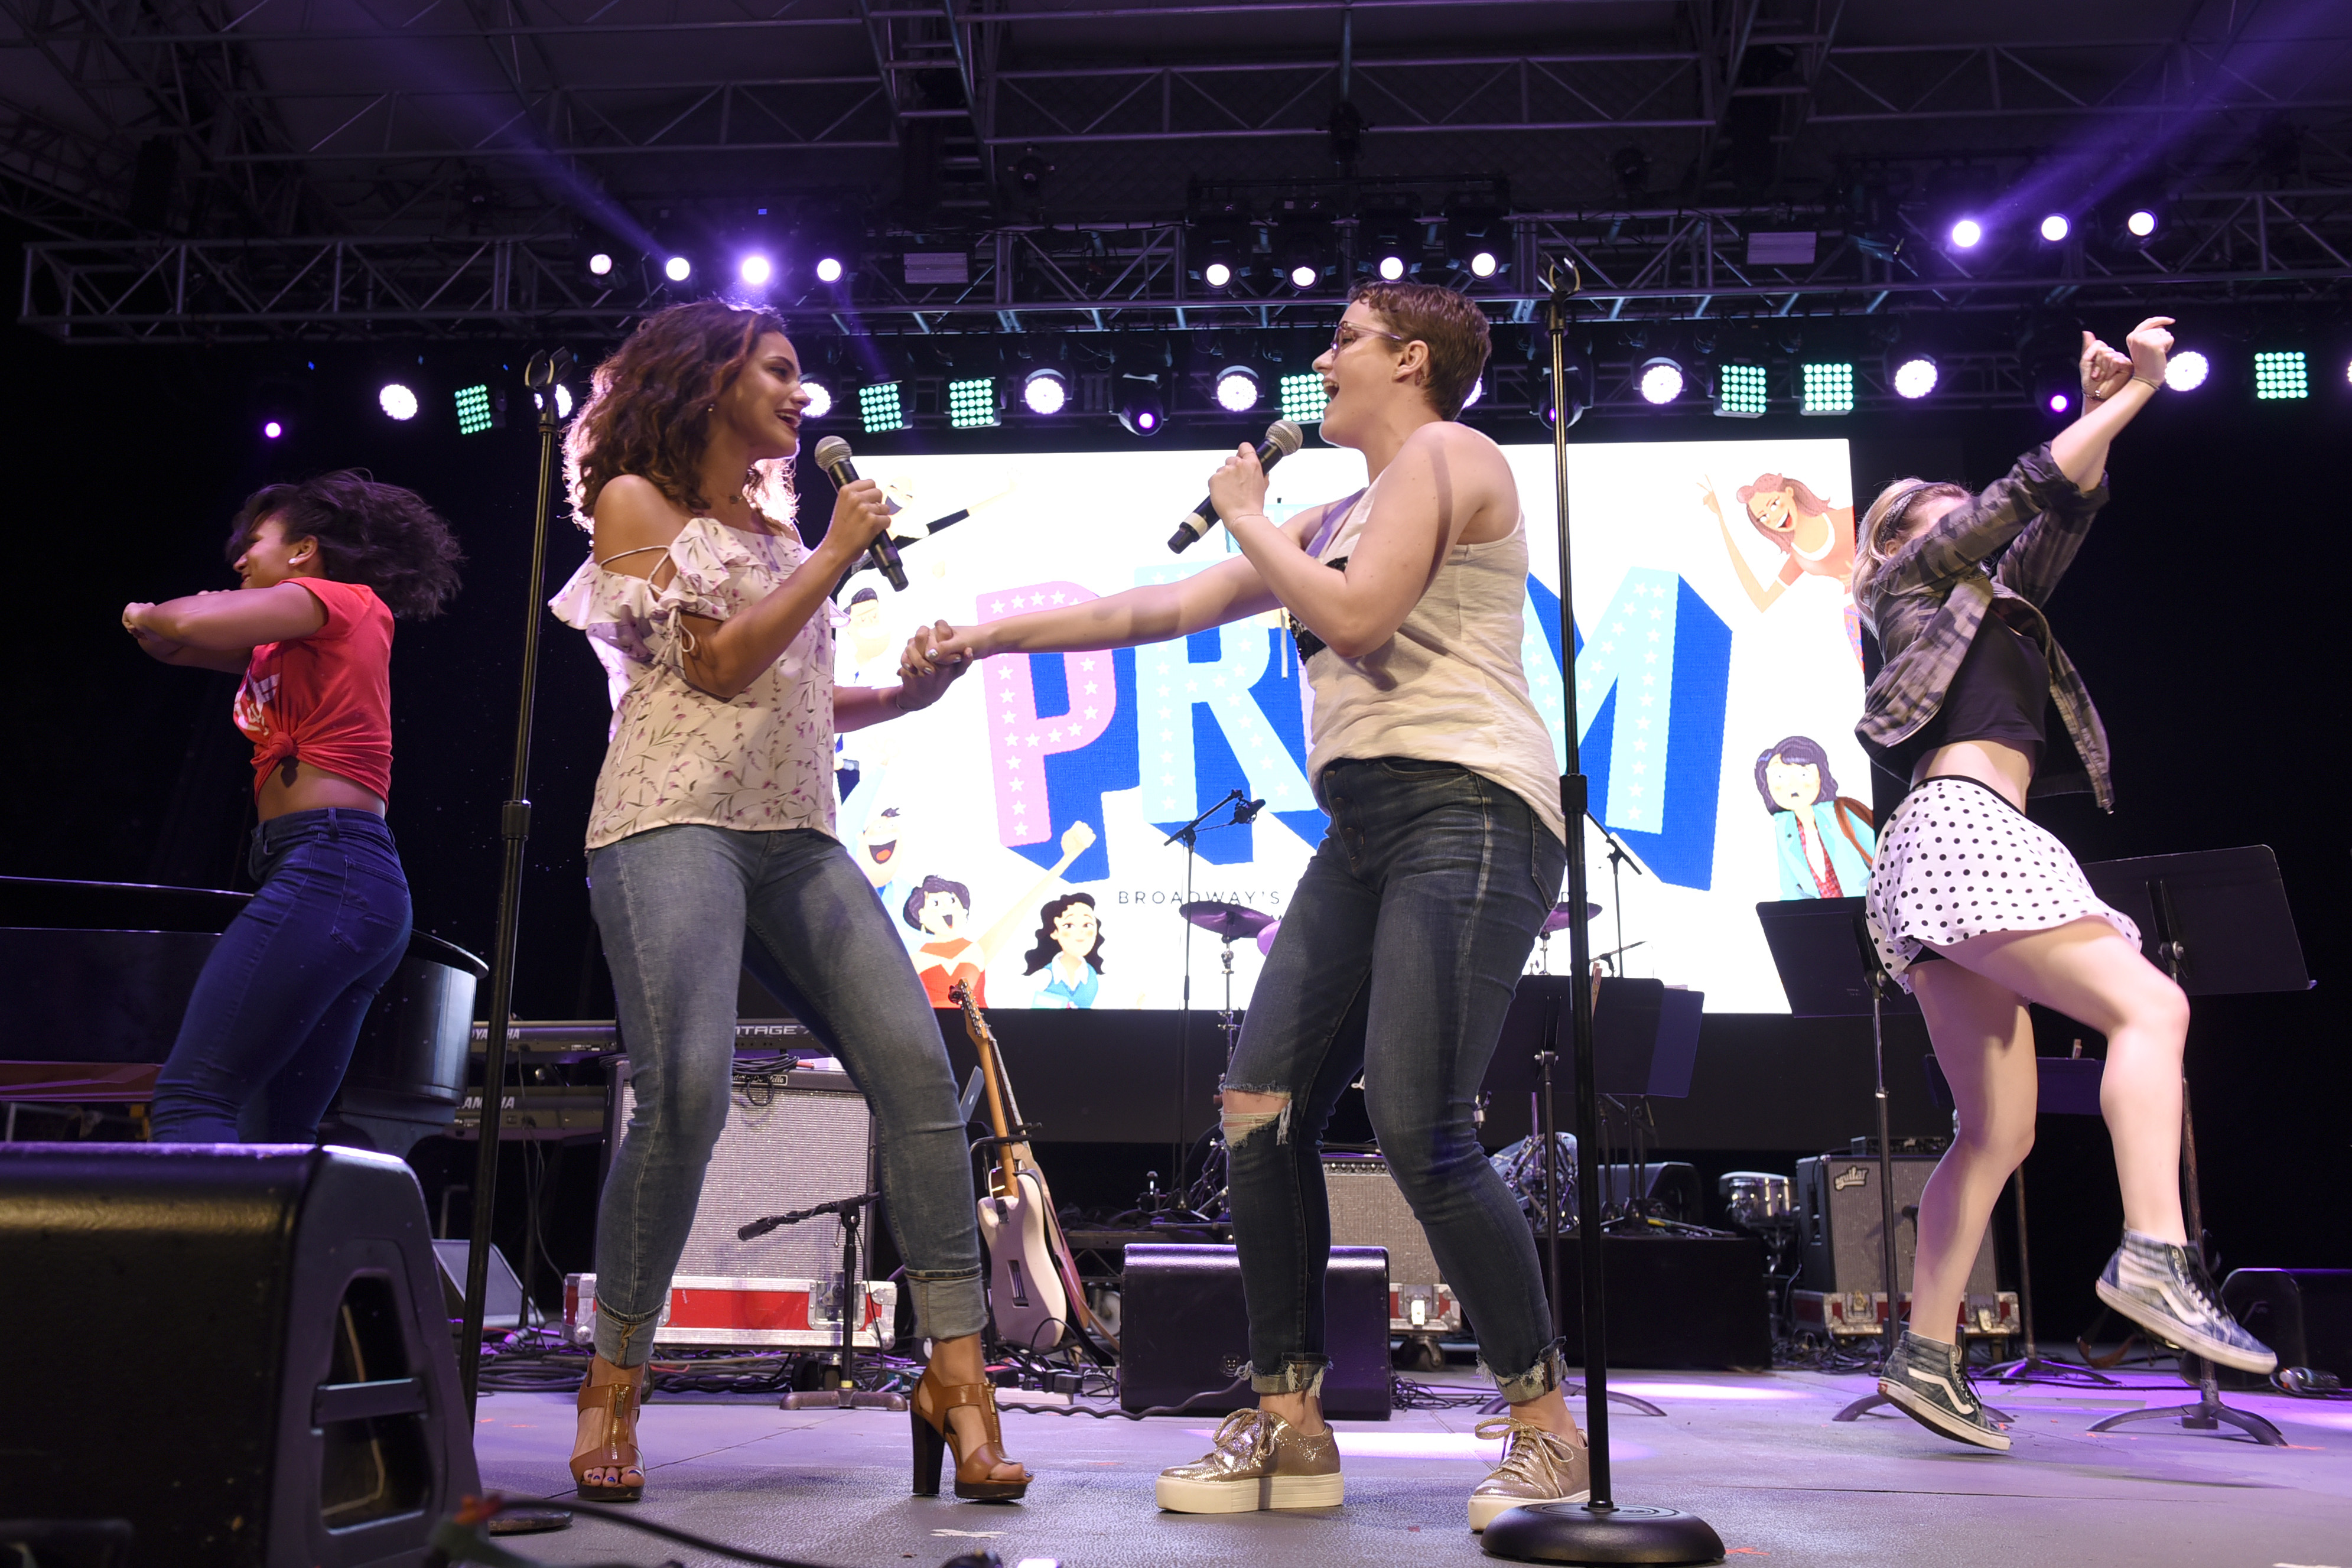 NEW YORK, NY - OCTOBER 07: Isabelle McCalla, Caitlin Kinnunen, and the cast of The Prom perform onstage during the 4th Annual Elsie Fest, Broadway's Outdoor Music Festival at Central Park SummerStage on October 7, 2018 in New York City. (Photo by Jenny Anderson/Getty Images for Elsie Fest)